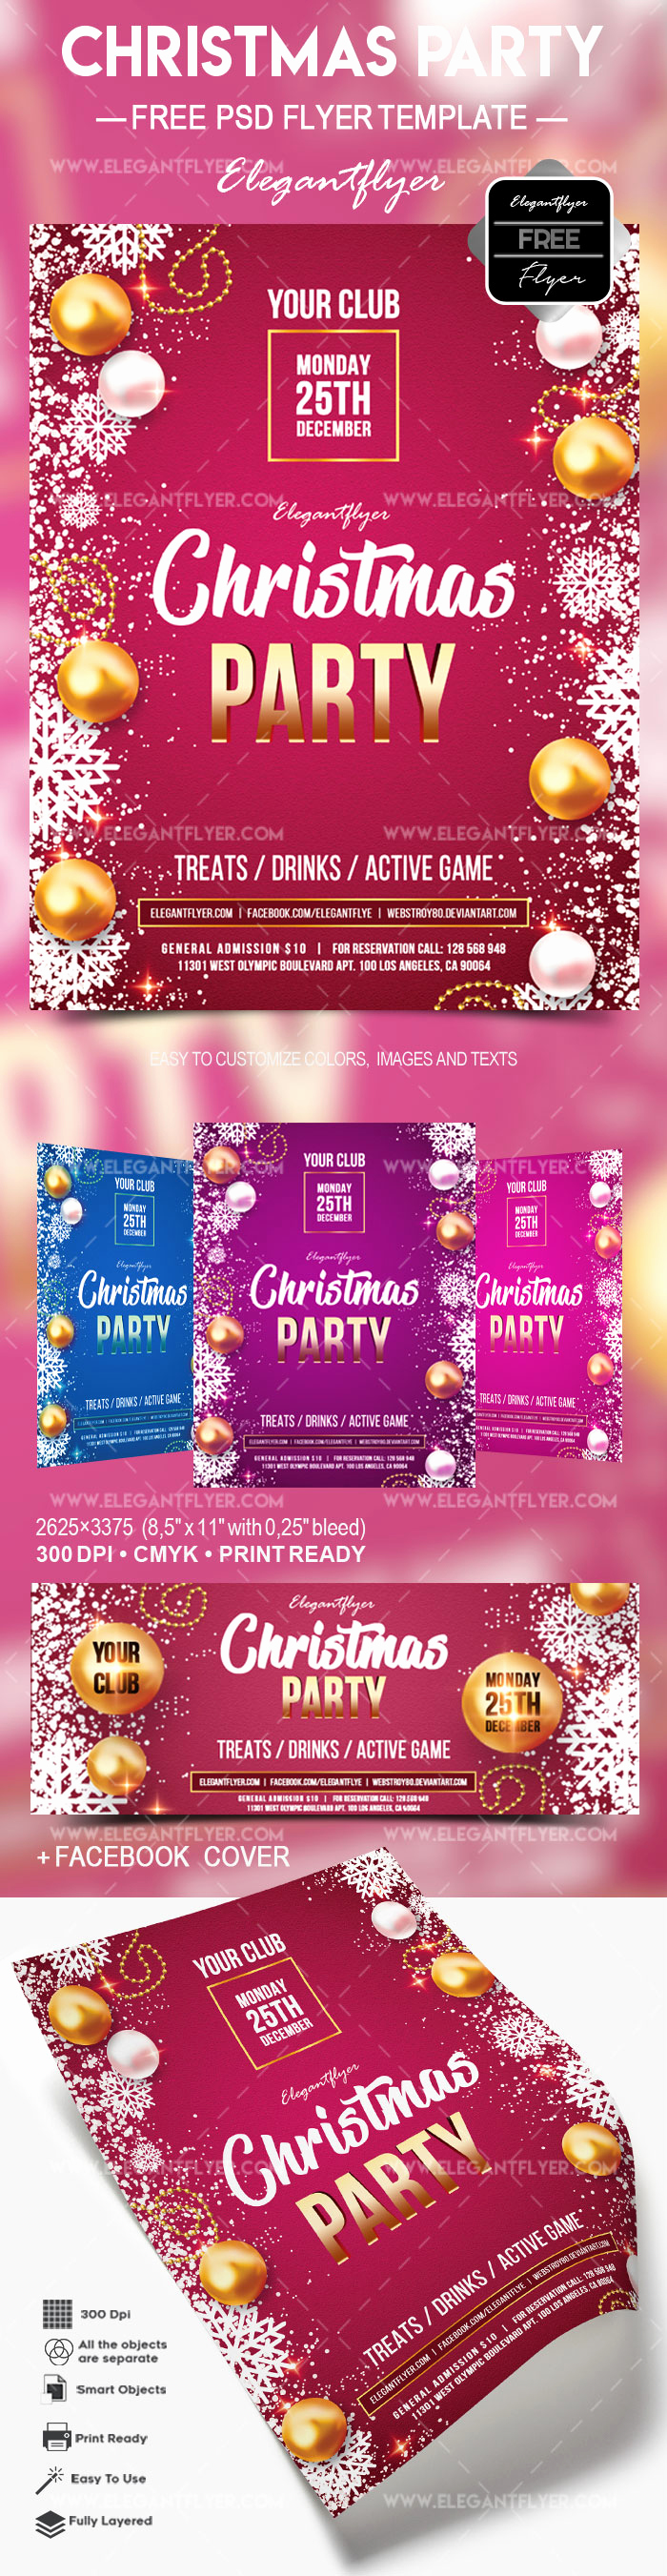 Free Christmas Flyer Templates New Free Christmas Party – Flyer Psd Template – by Elegantflyer